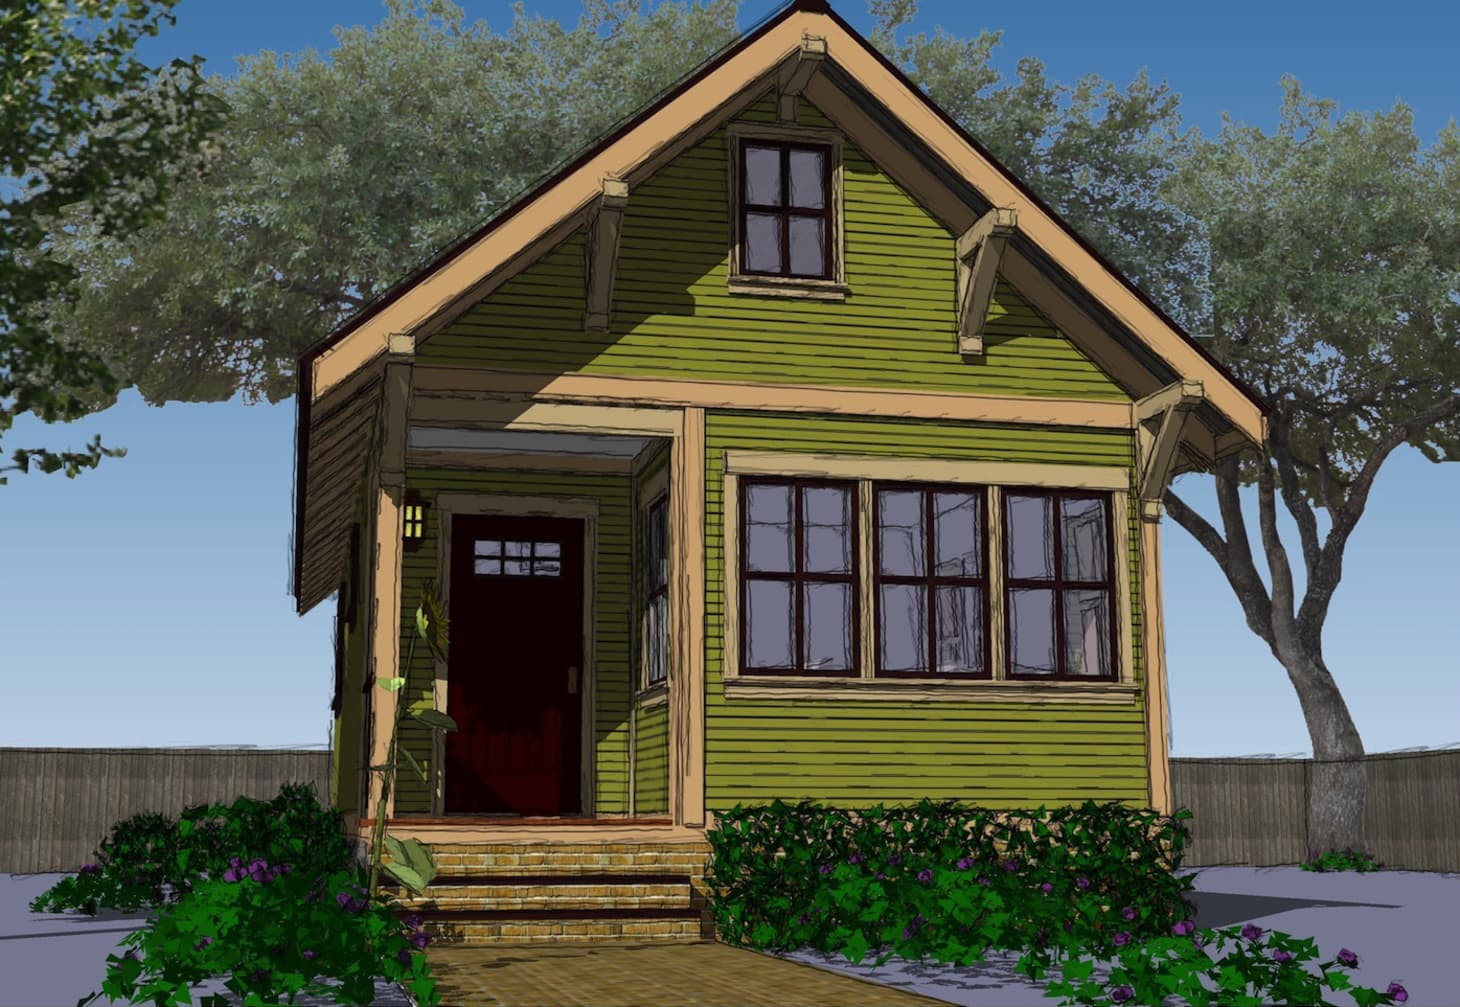 10 Free (or Very Cheap) Tiny House Plans | Apartment Therapy